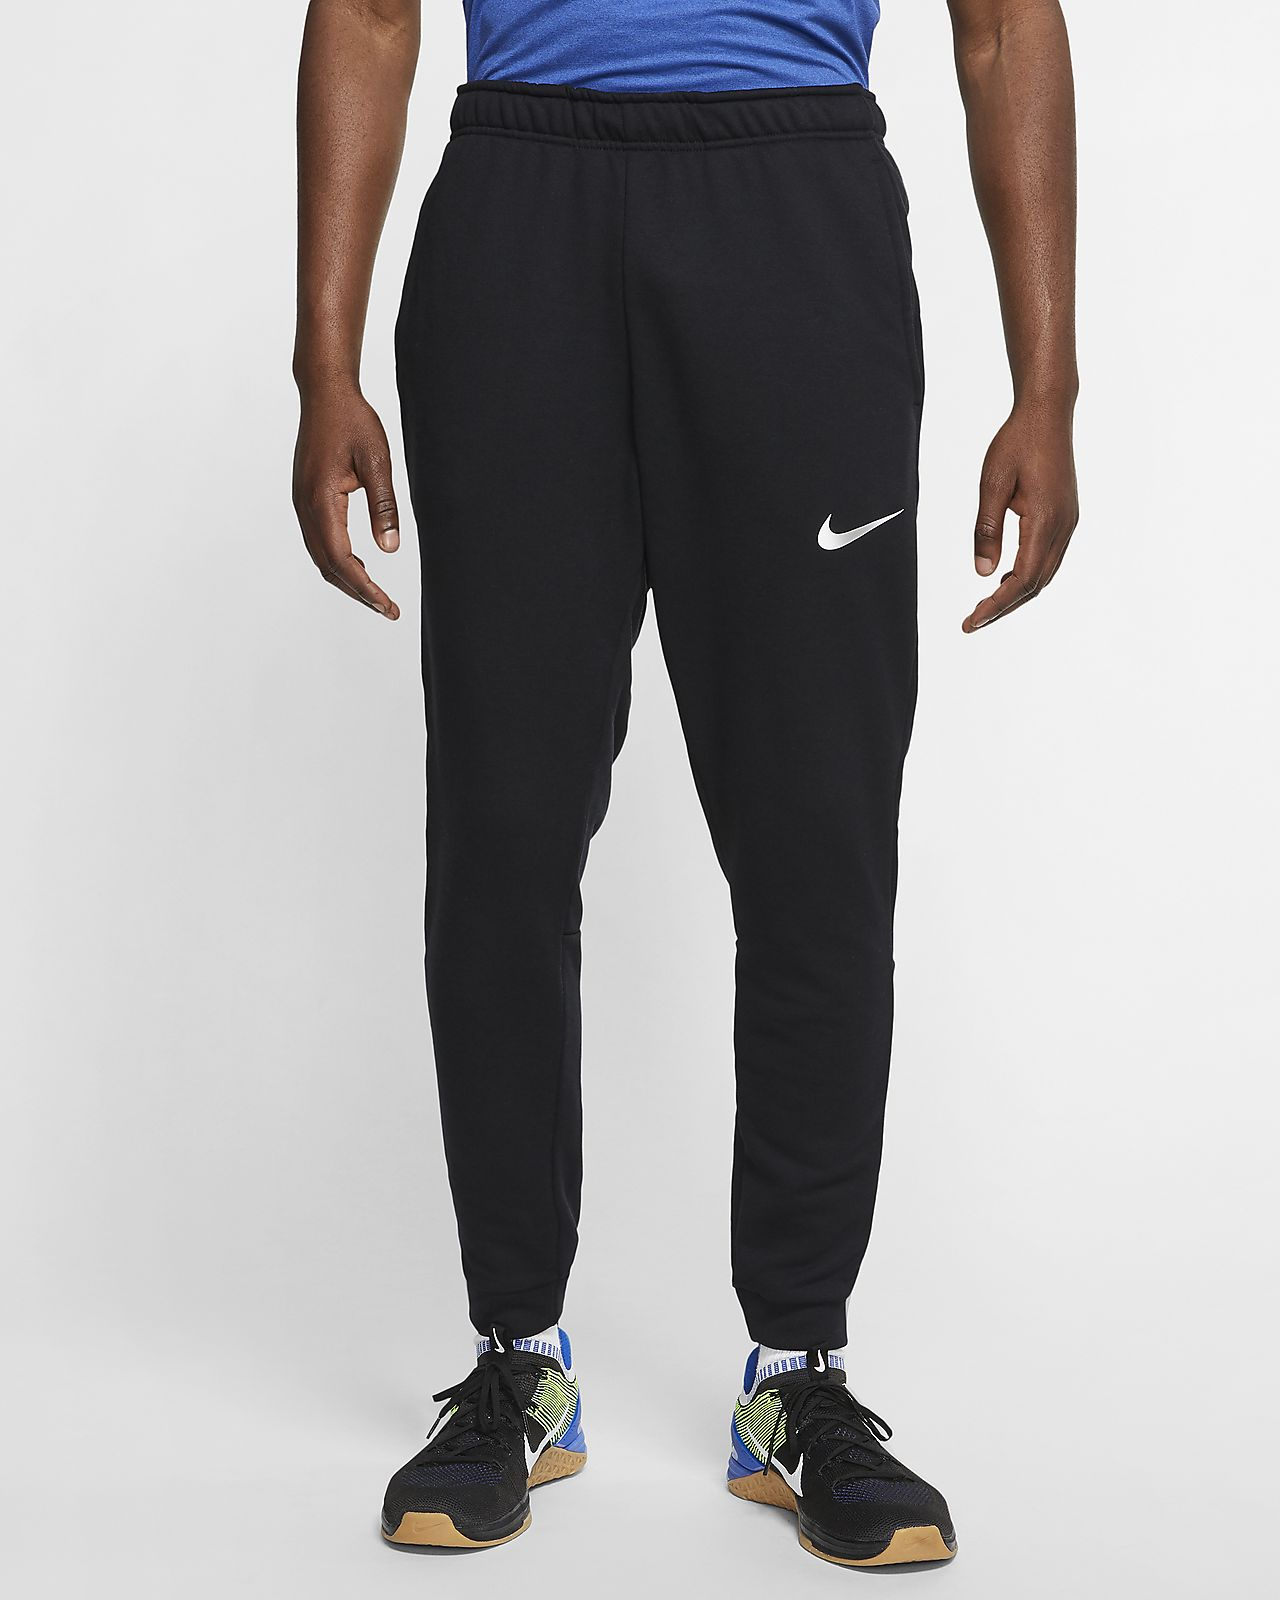 Nike Dri-FIT Men's Fleece Training Trousers